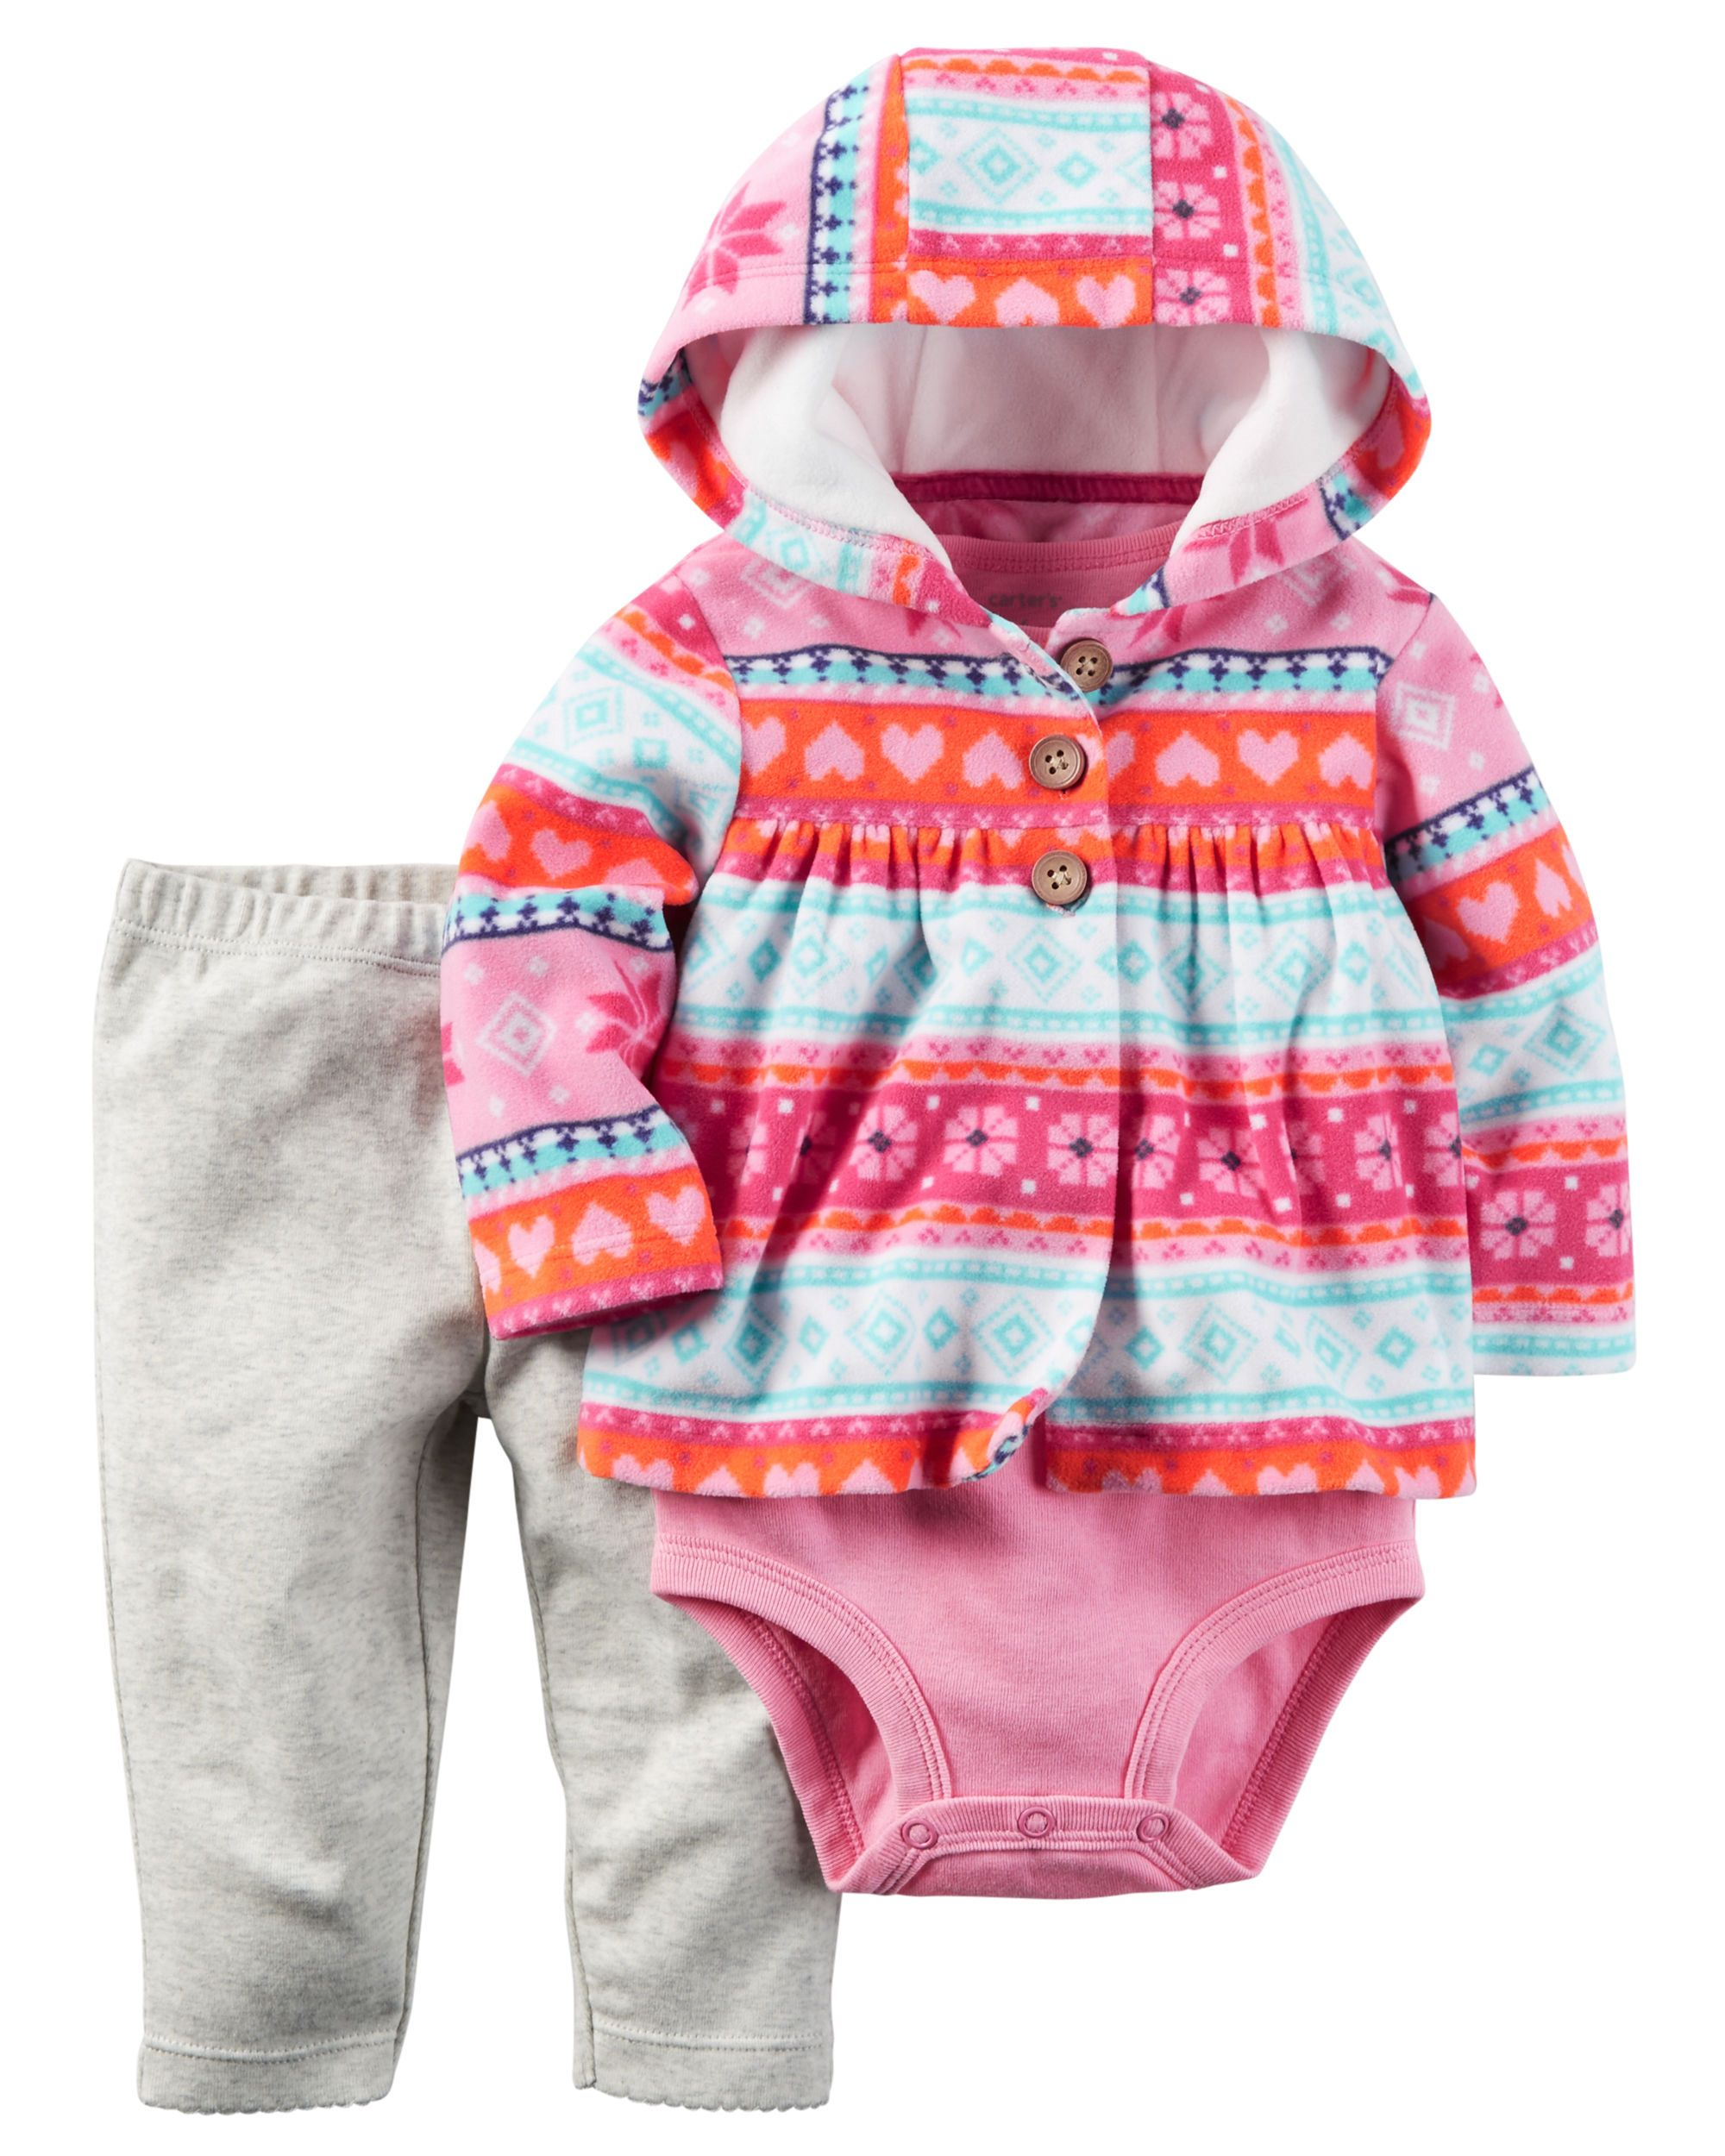 c5be7b96f9 Baby Girl 3-Piece Little Jacket Set